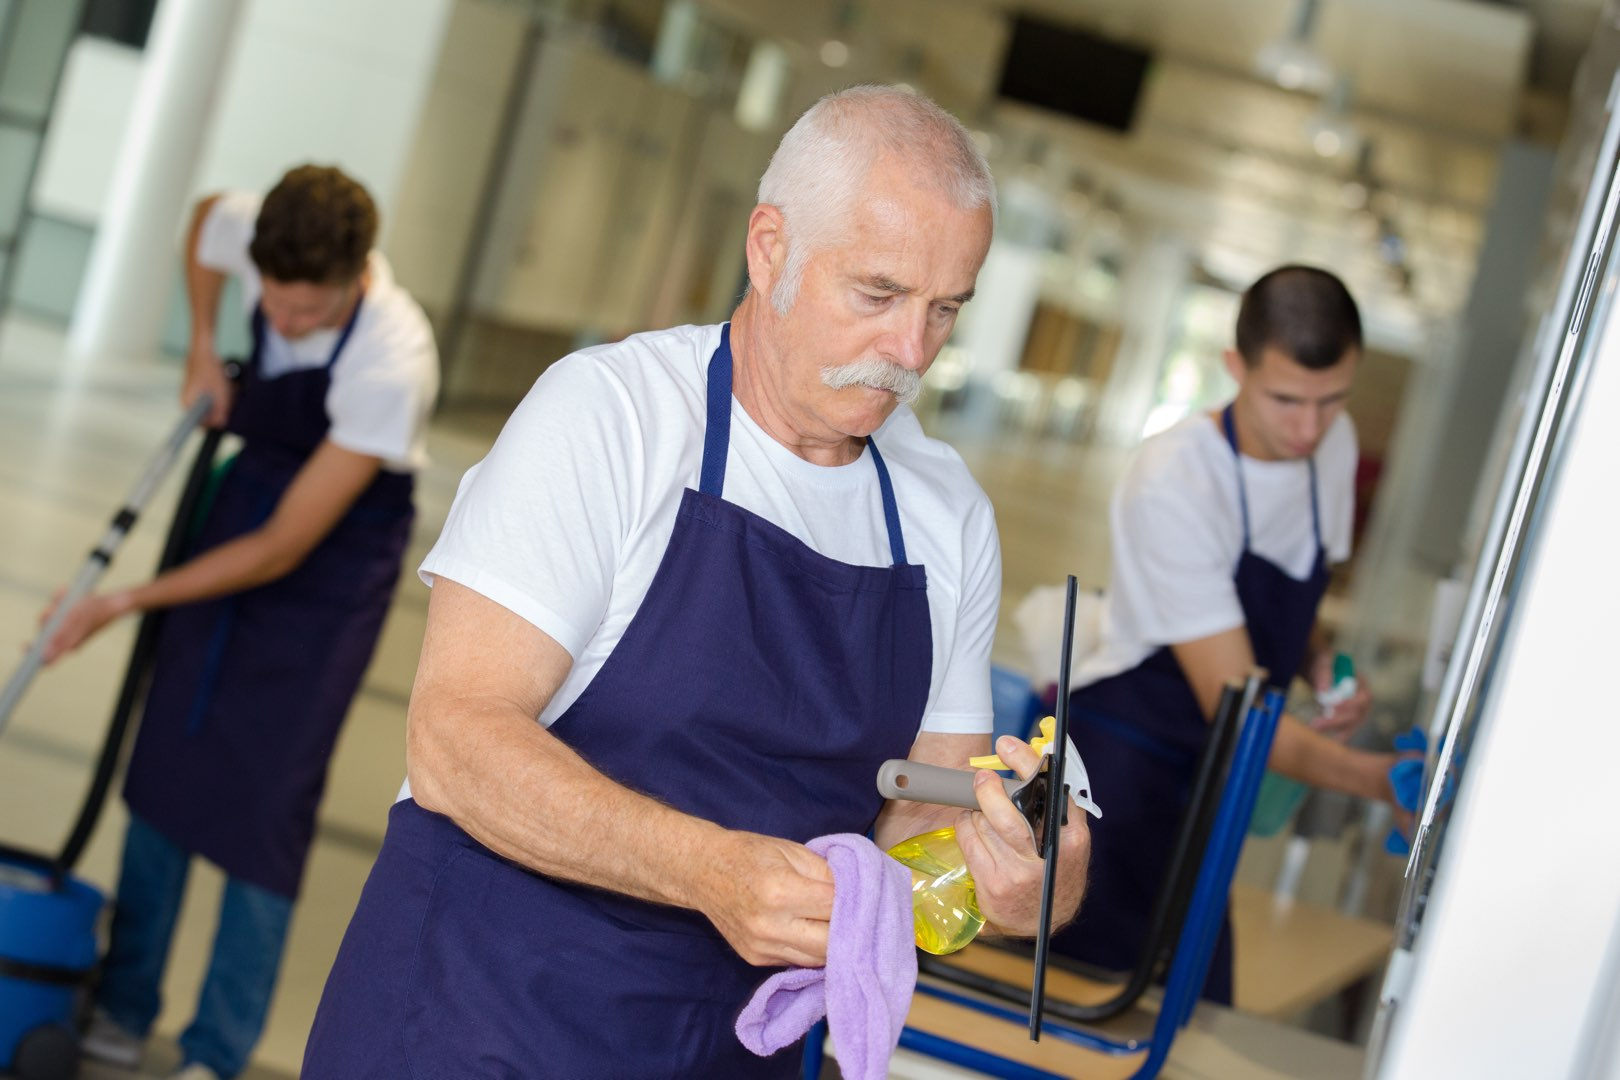 An older man holding a squeegee. commercial janitorial services